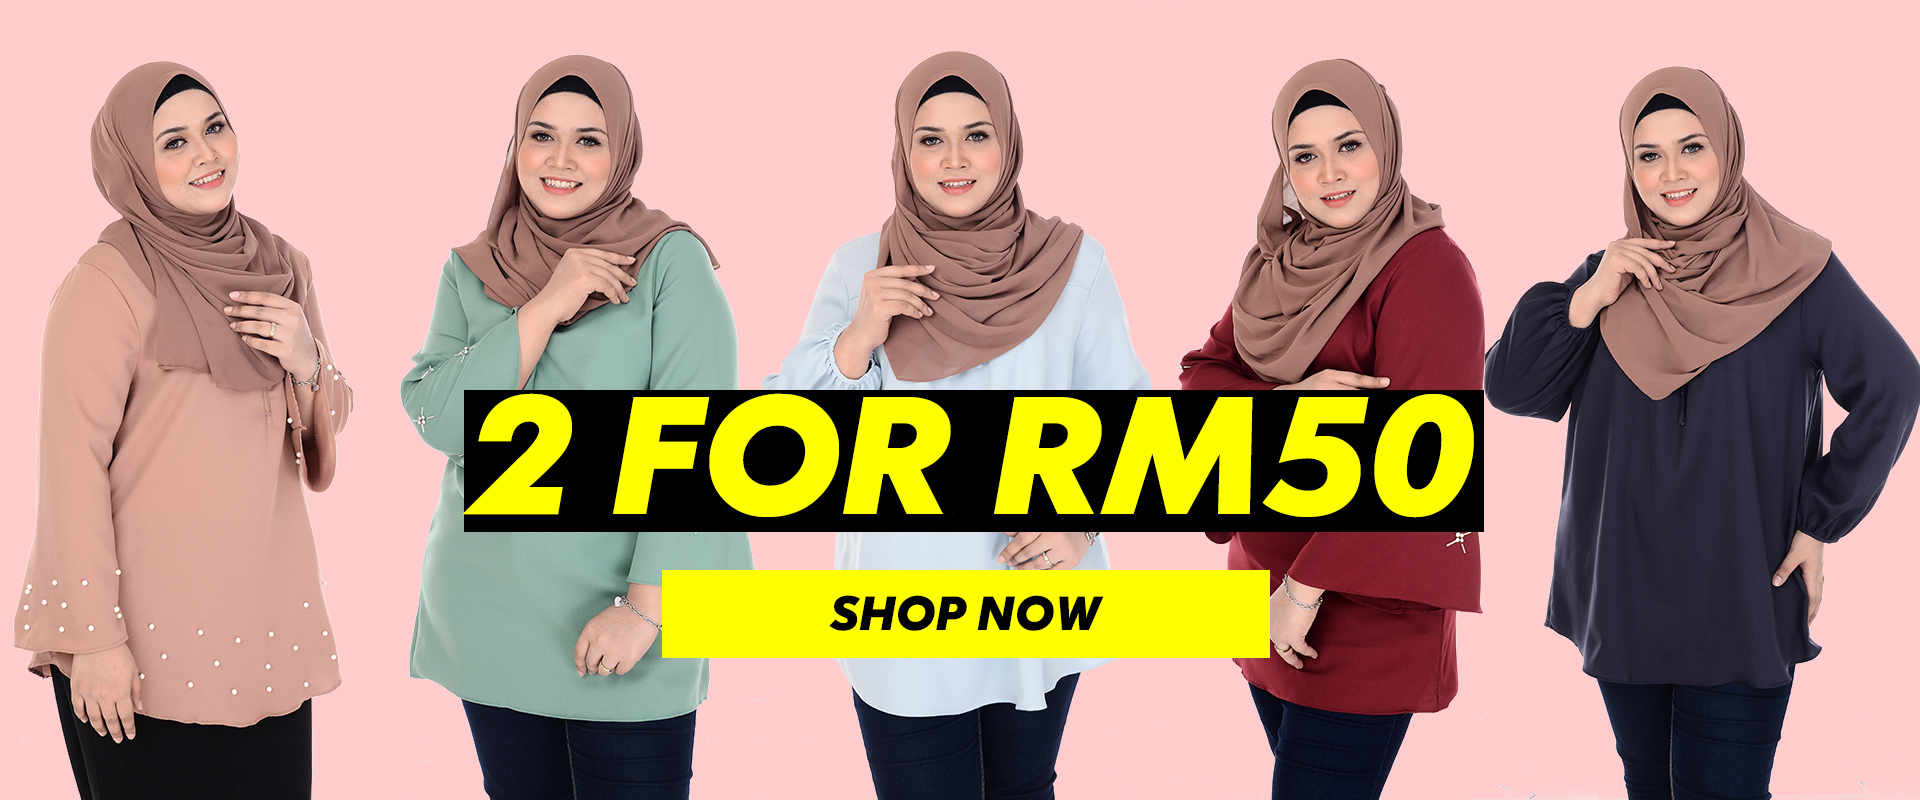 2FORRM50 - Home